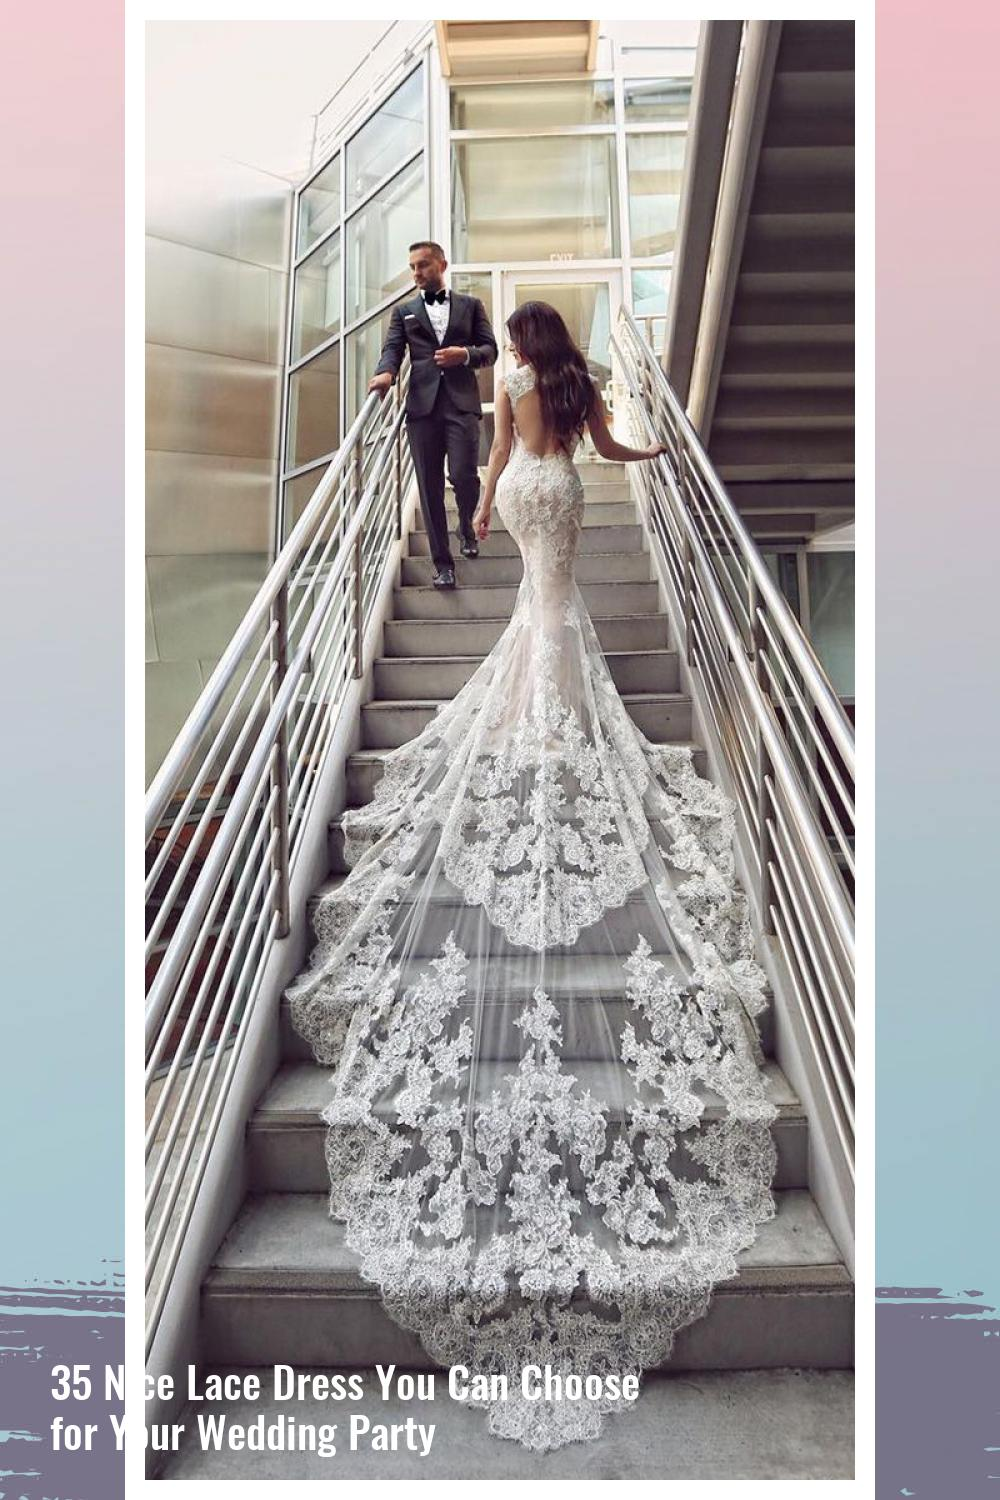 35 Nice Lace Dress You Can Choose for Your Wedding Party 26